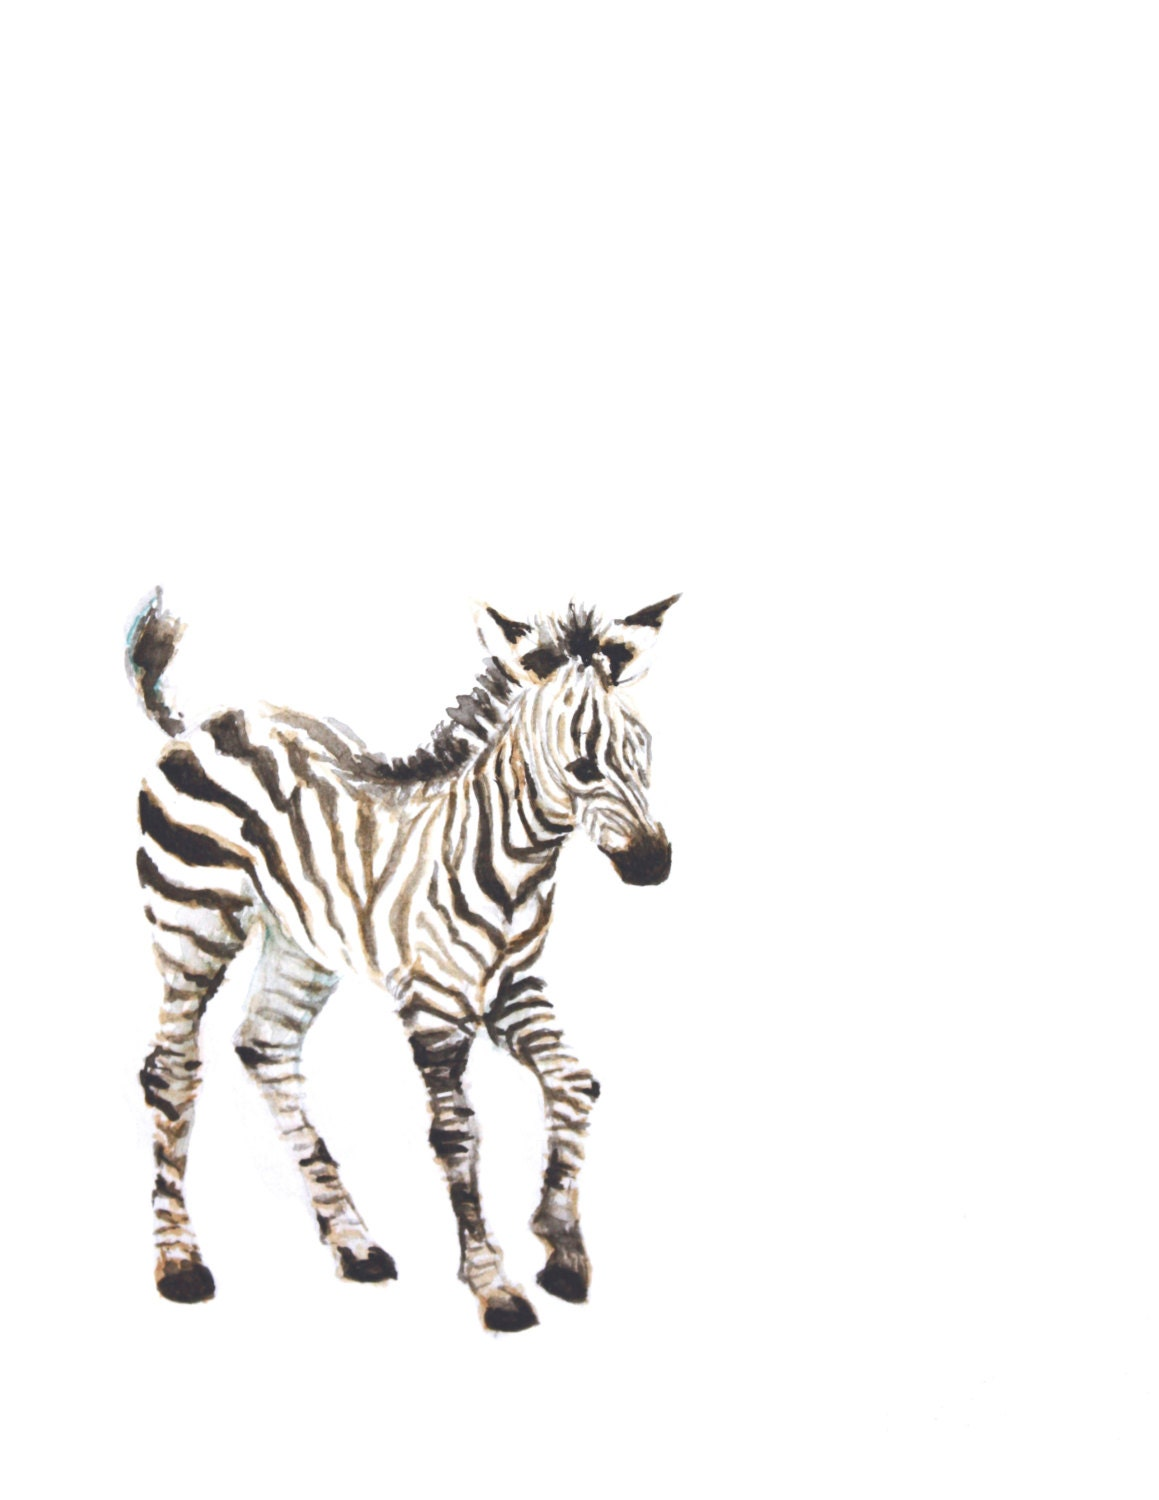 Baby Zebra Watercolor PRINT Animal Painting by ...